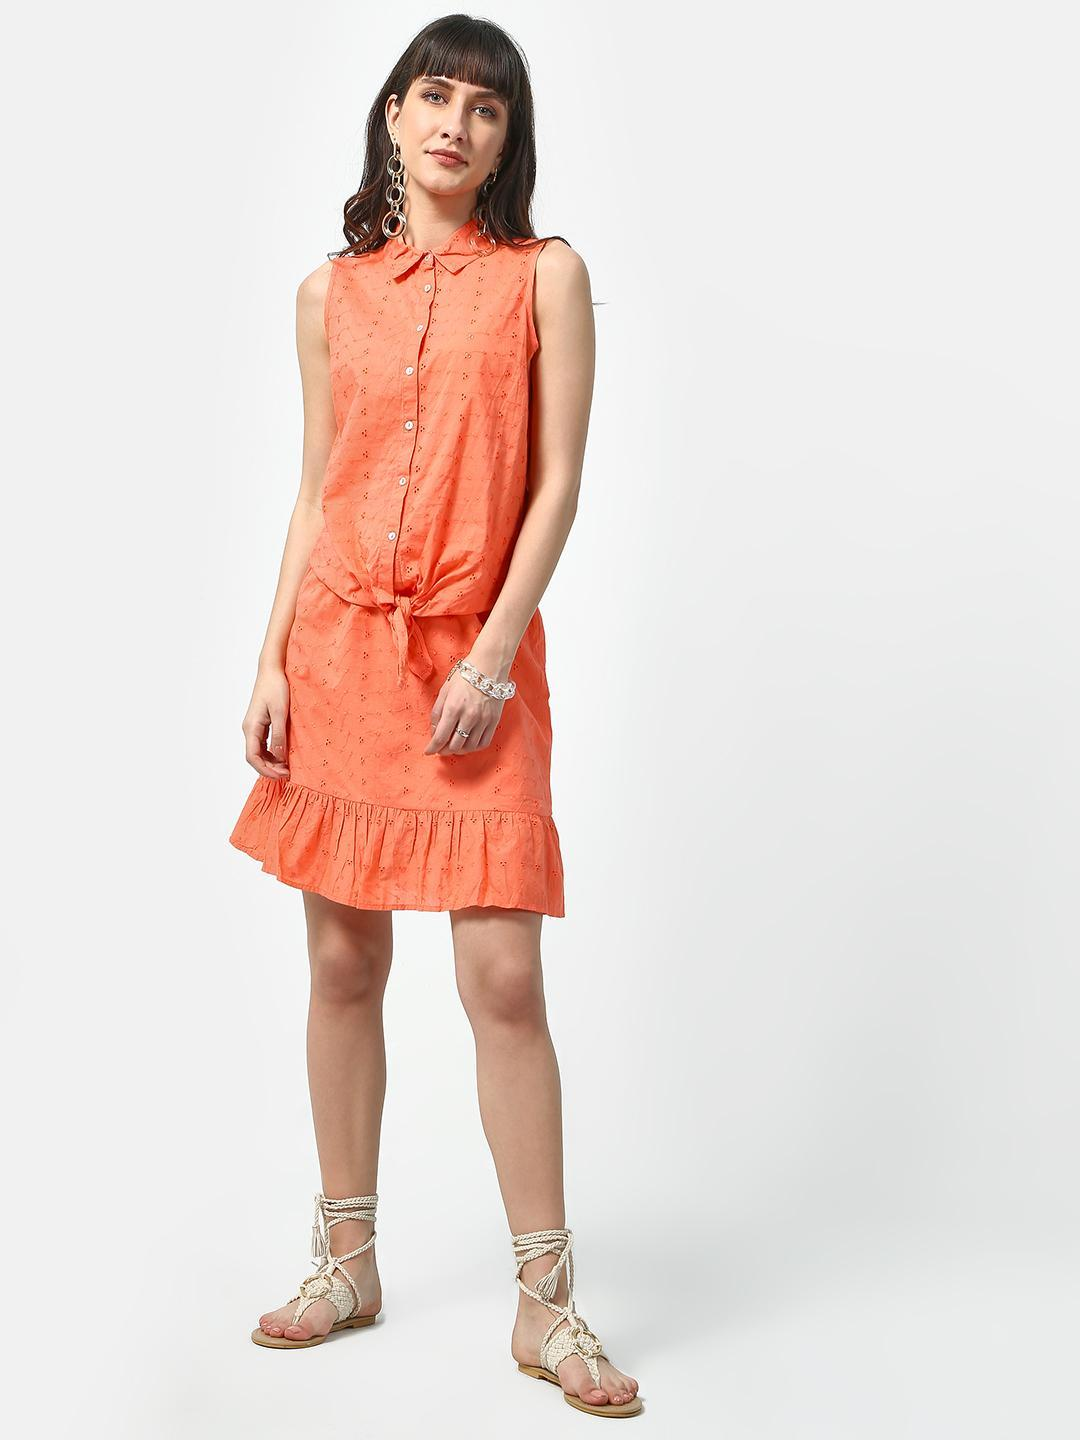 Oxolloxo Orange Pulp Friction Dotted Casual Shirt 1